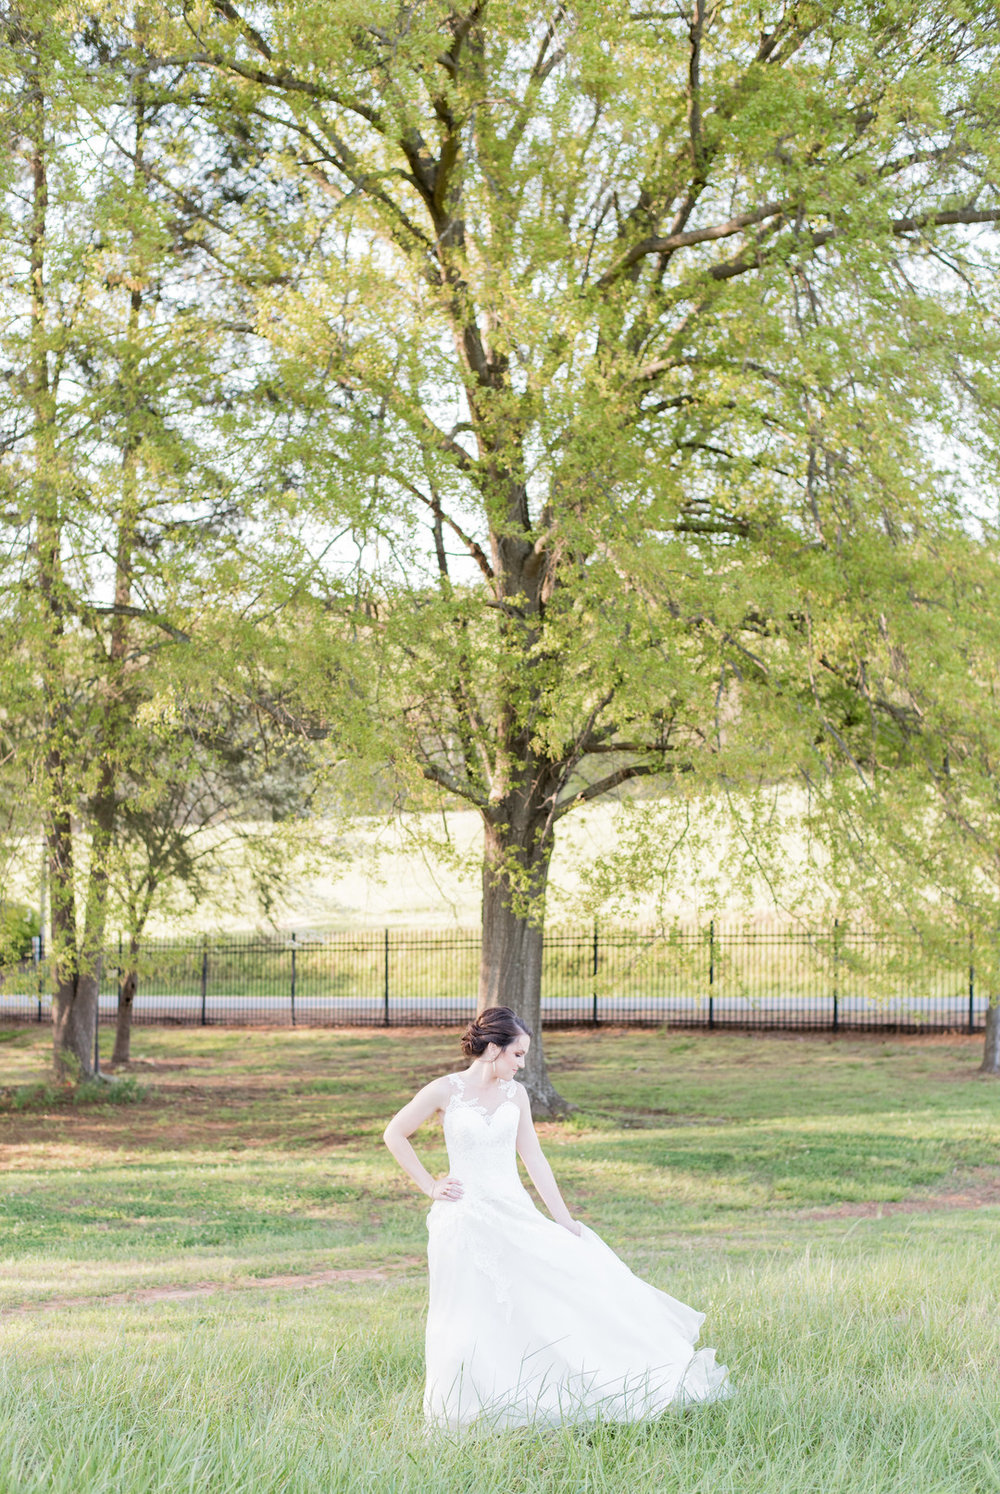 Corinn's Rustic Bridal Session at Lindsey Plantation, Greenville, South Carolina | Palmetto State Weddings